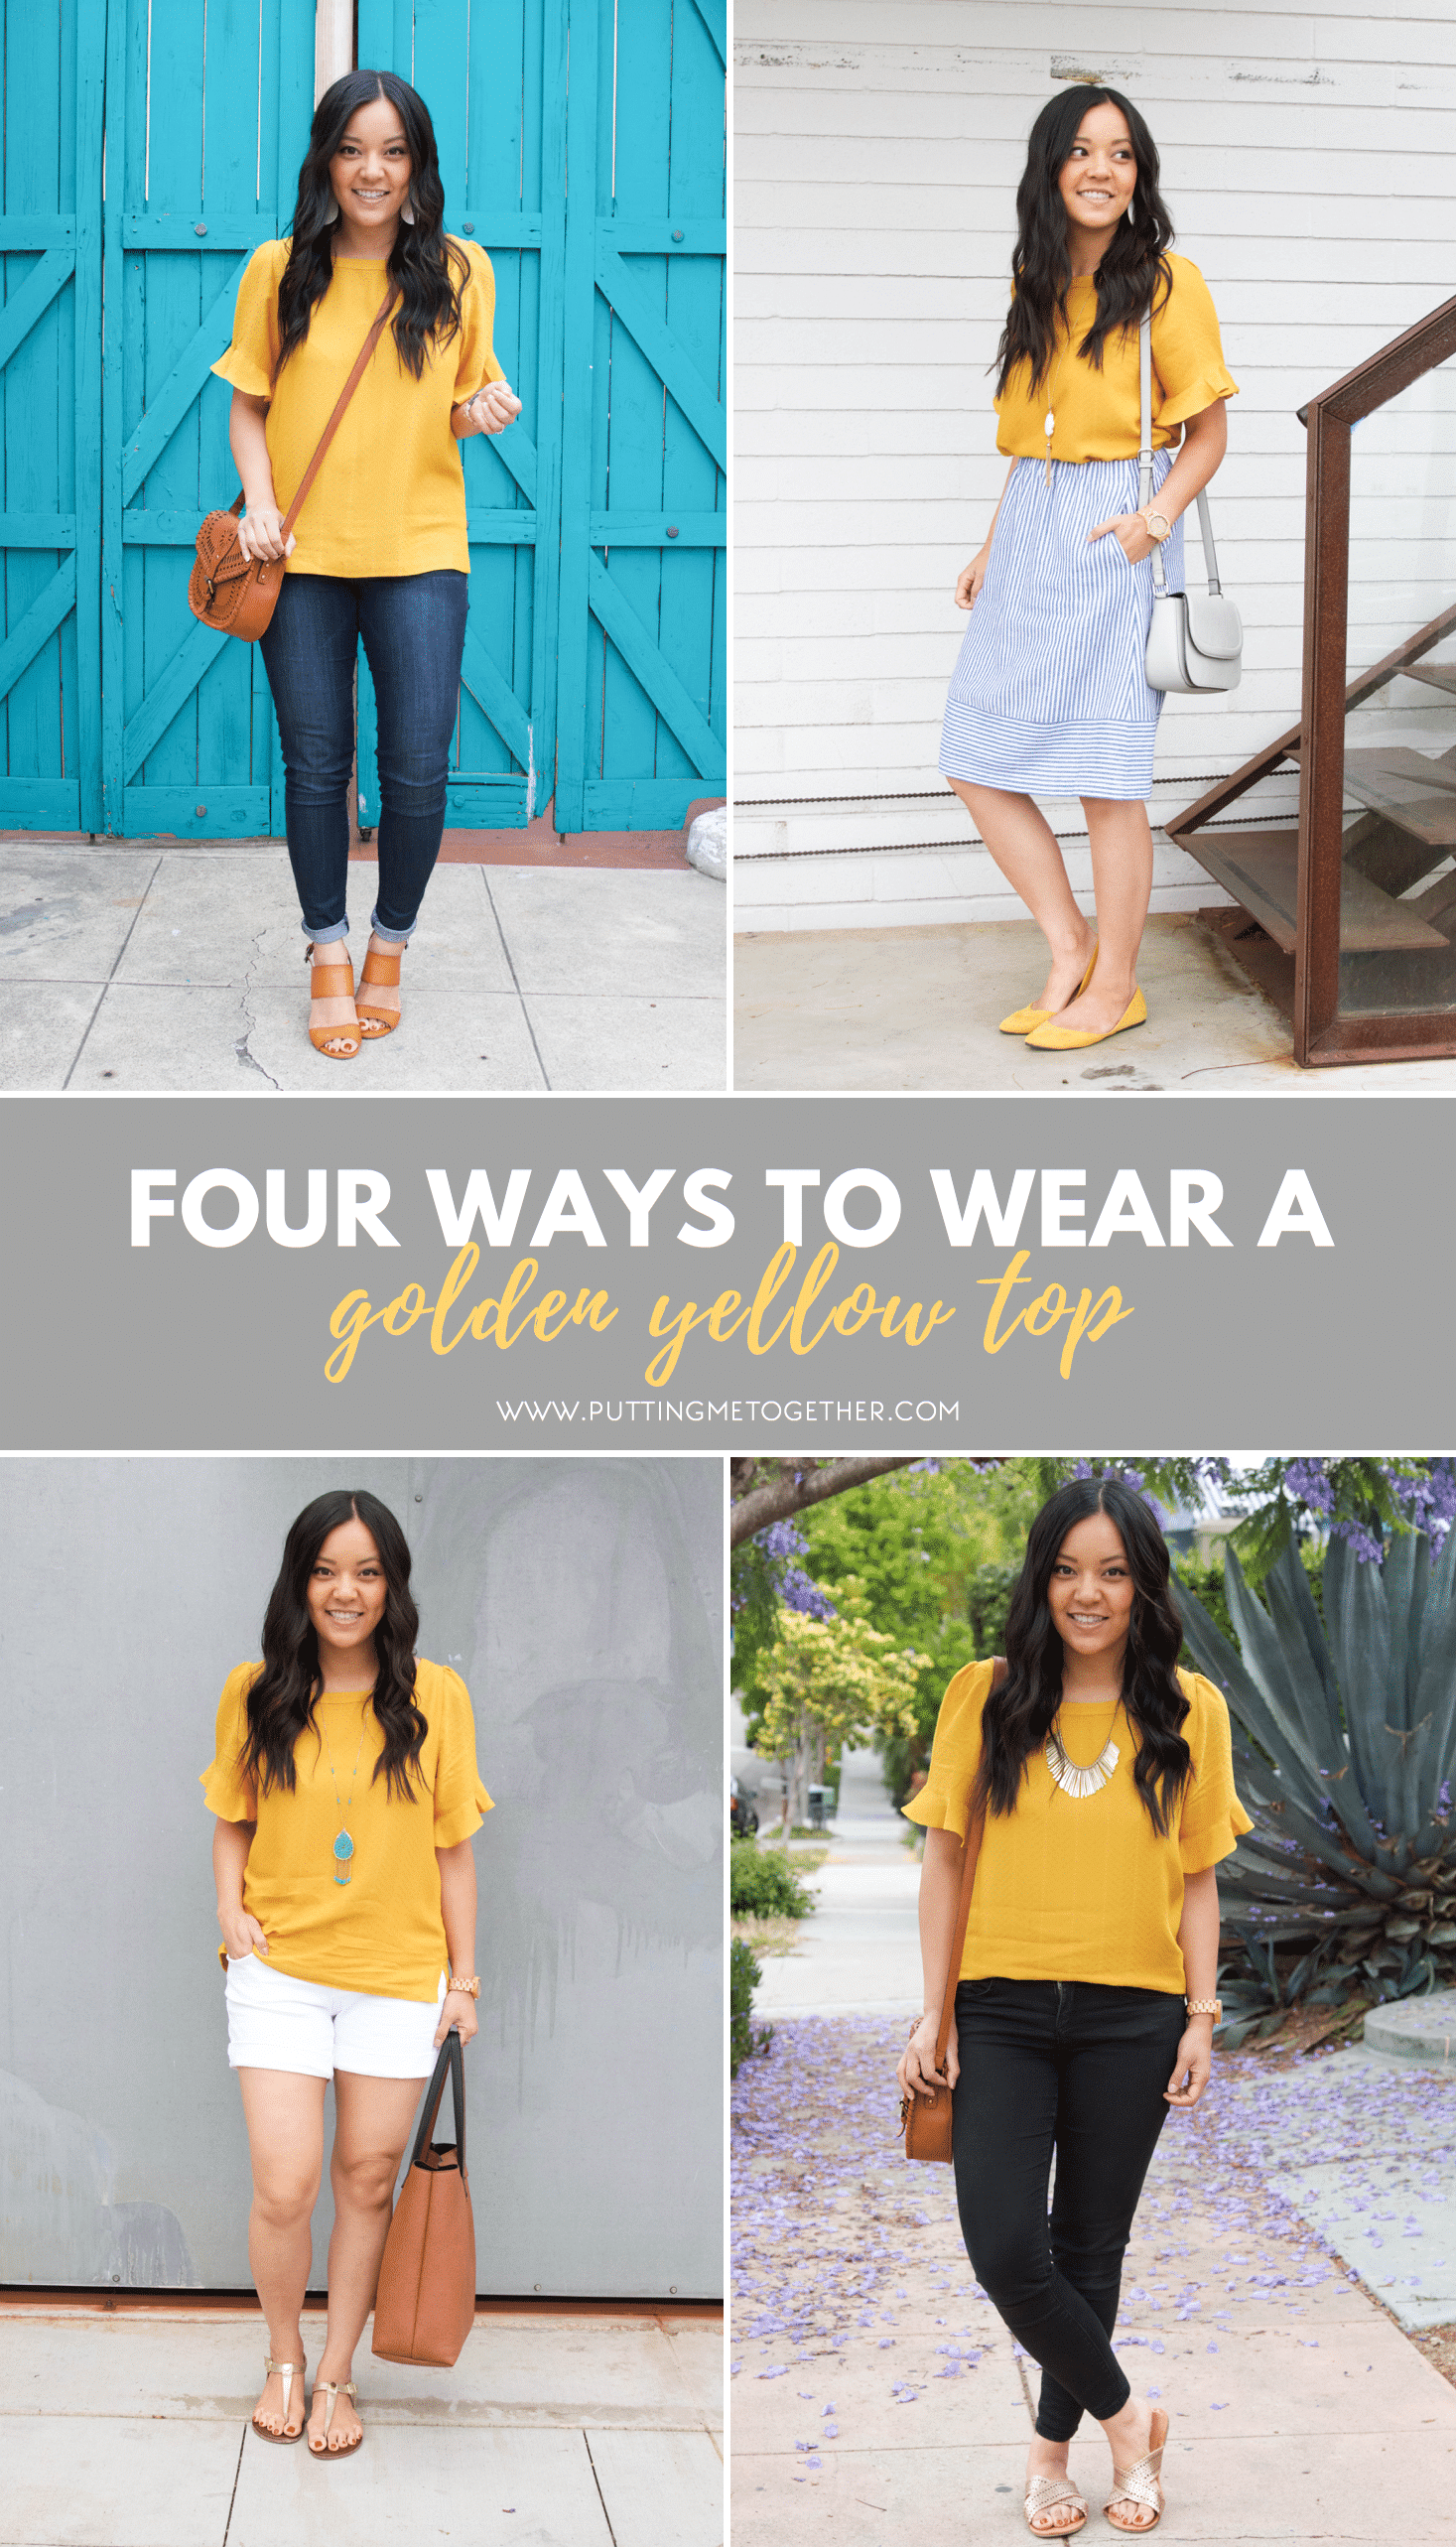 d3bfa6164a2 4 Ways to Style a Golden Yellow Top + 6 Yellow Top Options